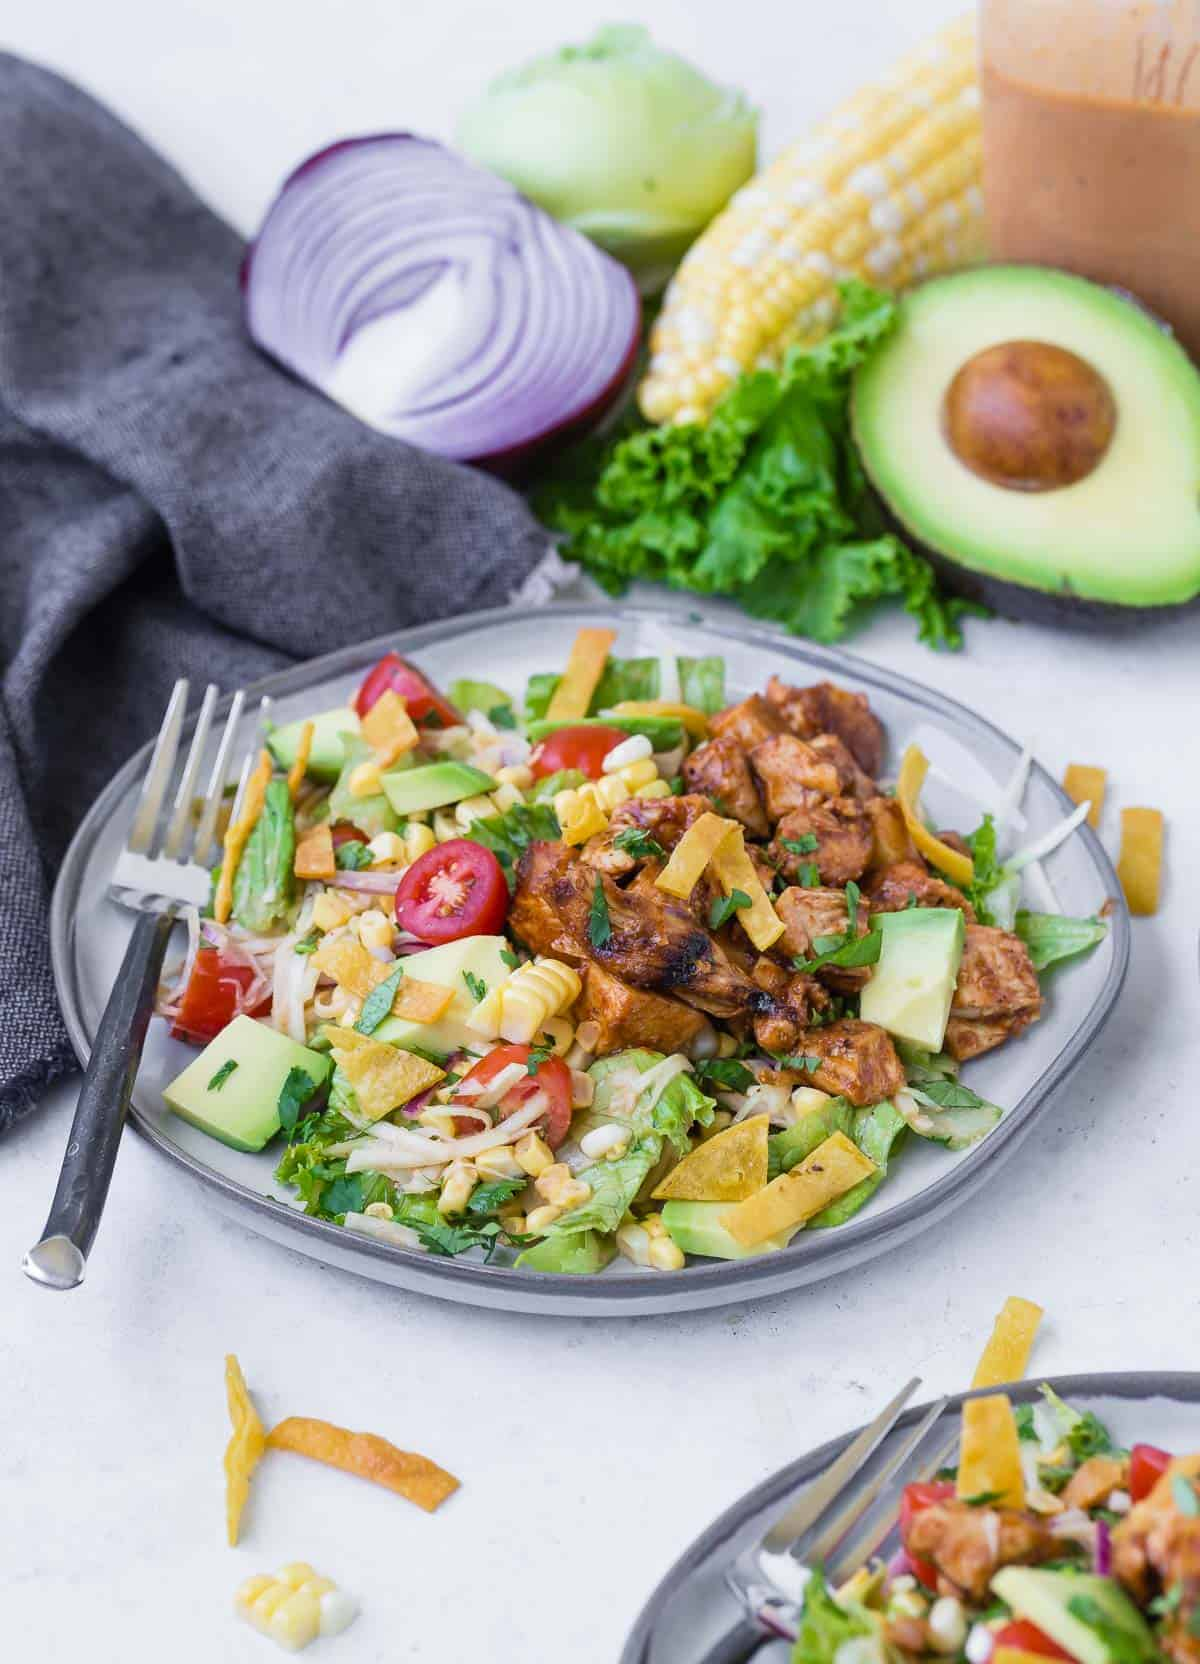 Colorful chopped salad on a grey plate. Salad includes bbq grilled chicken, lettuce, onion, tomato, crispy tortilla strips, avocado, corn and more! Whole ingredients are featured in the background of the image.